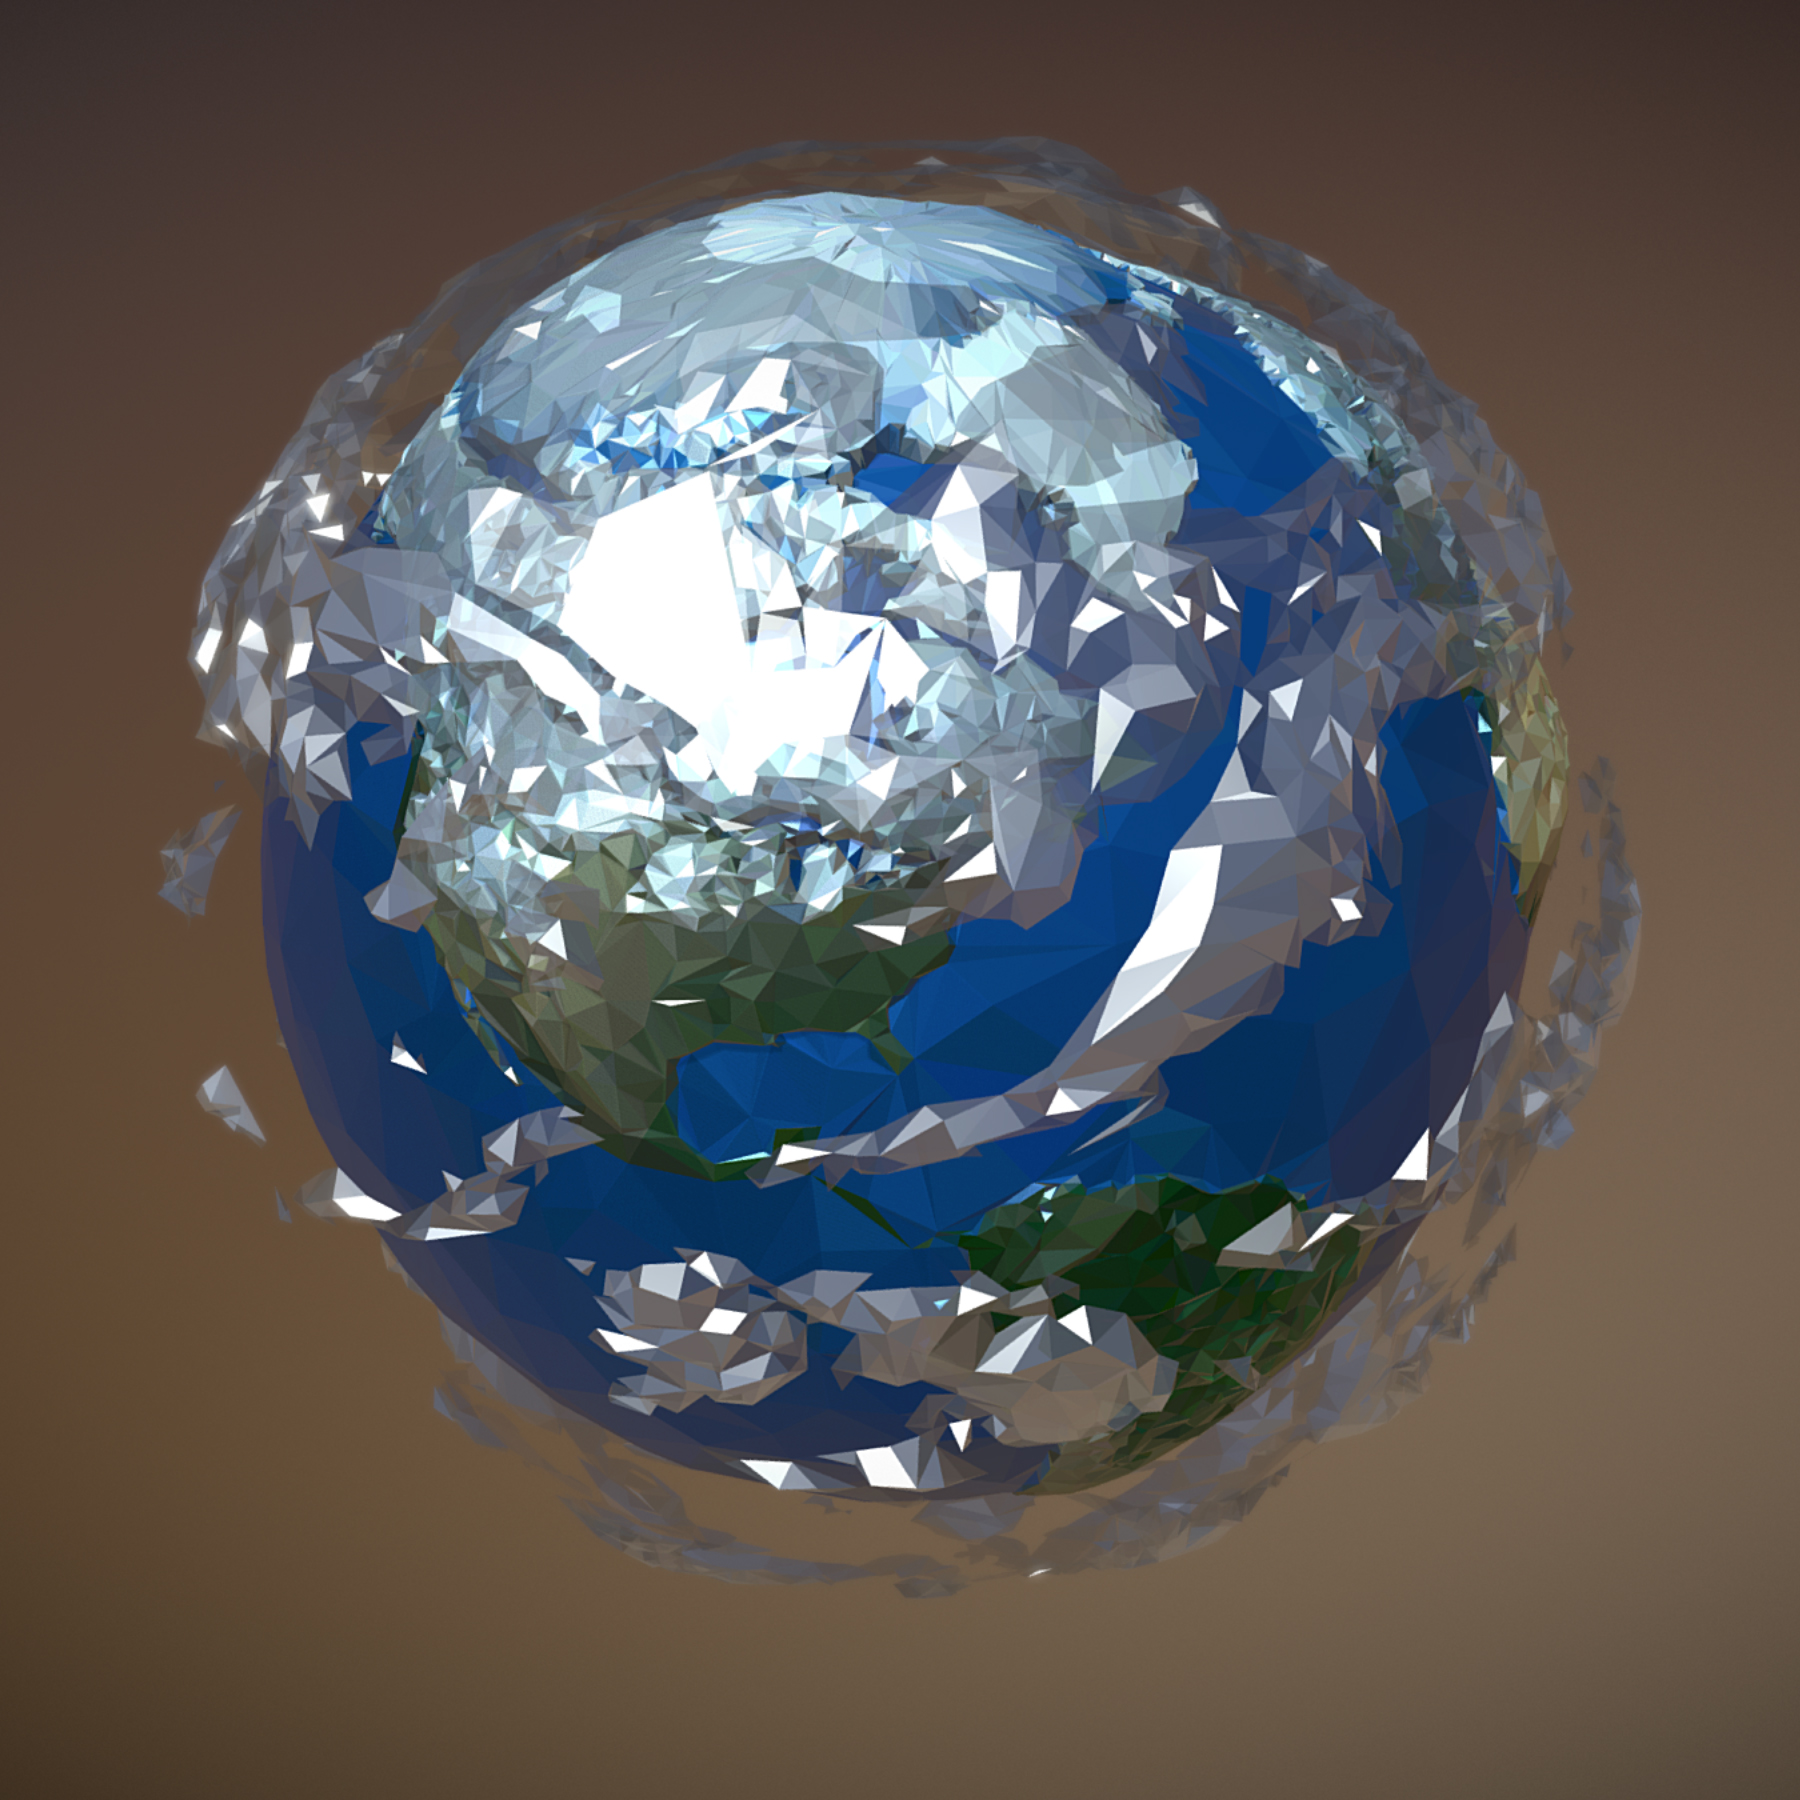 animated planet earth 3d model 3ds max fbx ma mb tga targa icb vda vst pix obj 271050